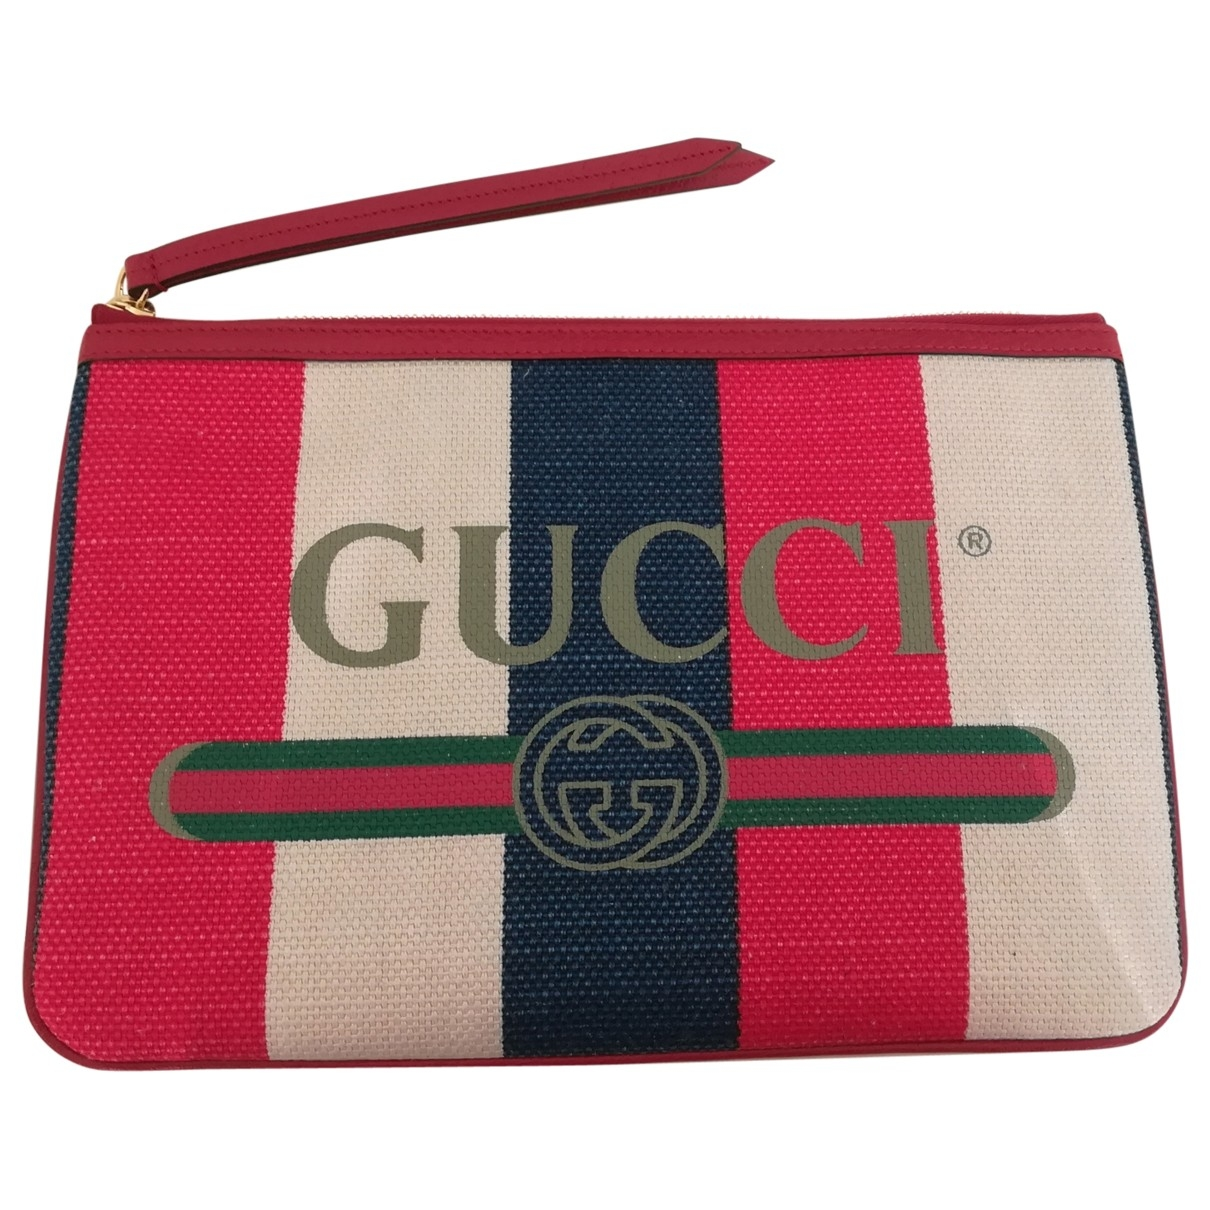 Gucci \N Red Linen Clutch bag for Women \N